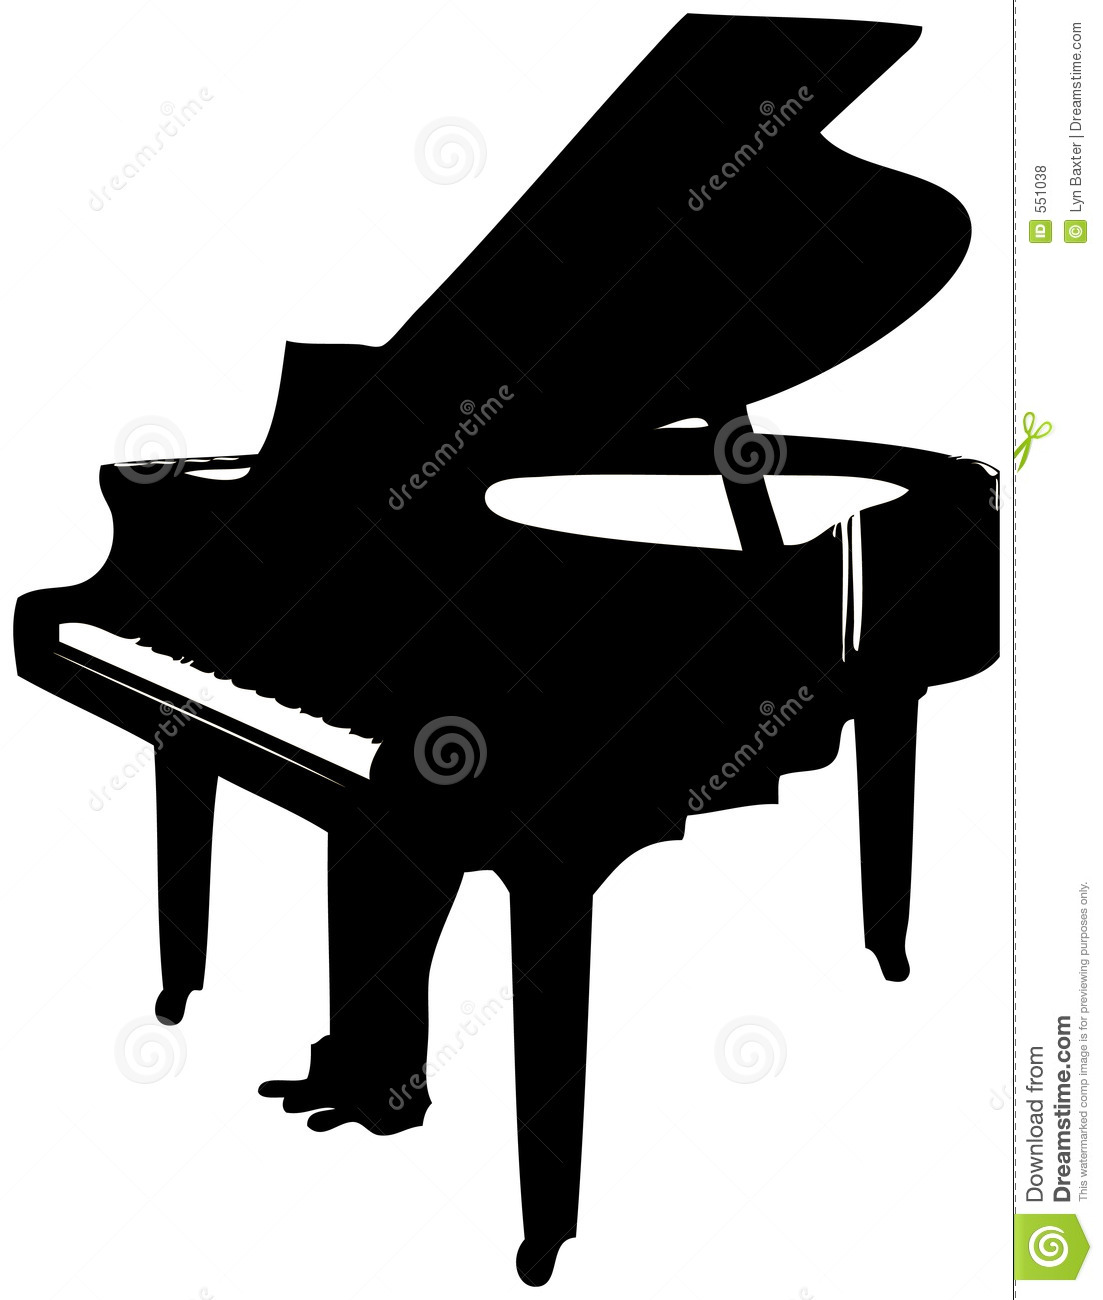 Keyboard black and white. Piano clipart tool